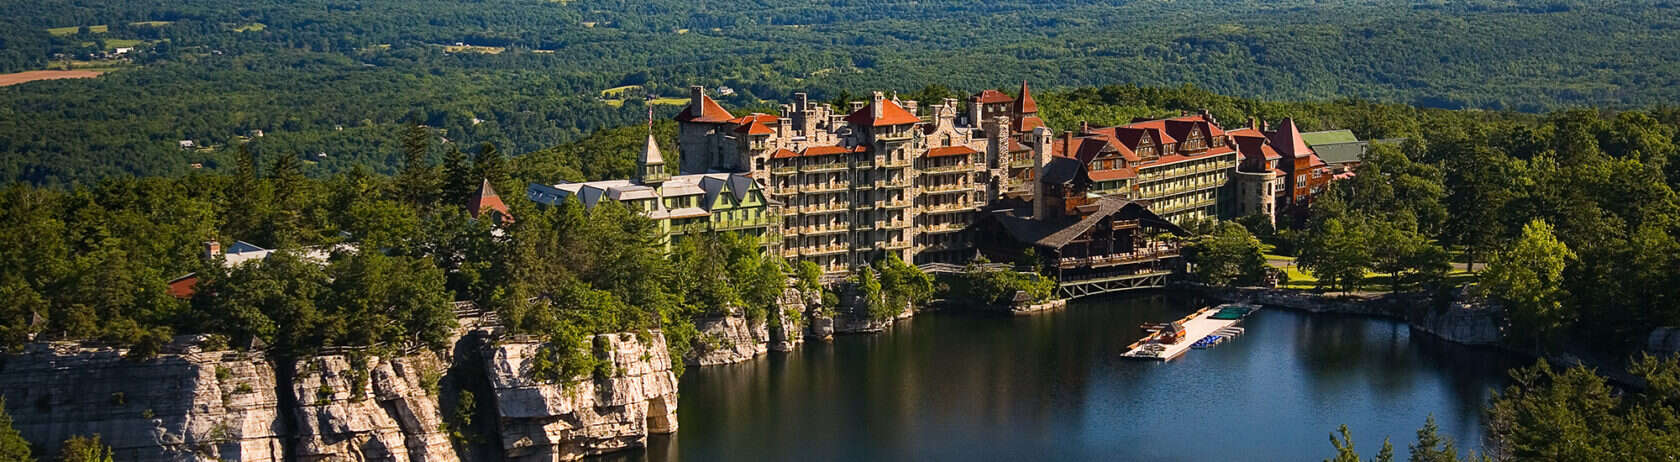 Mohonk Mountain House Summer